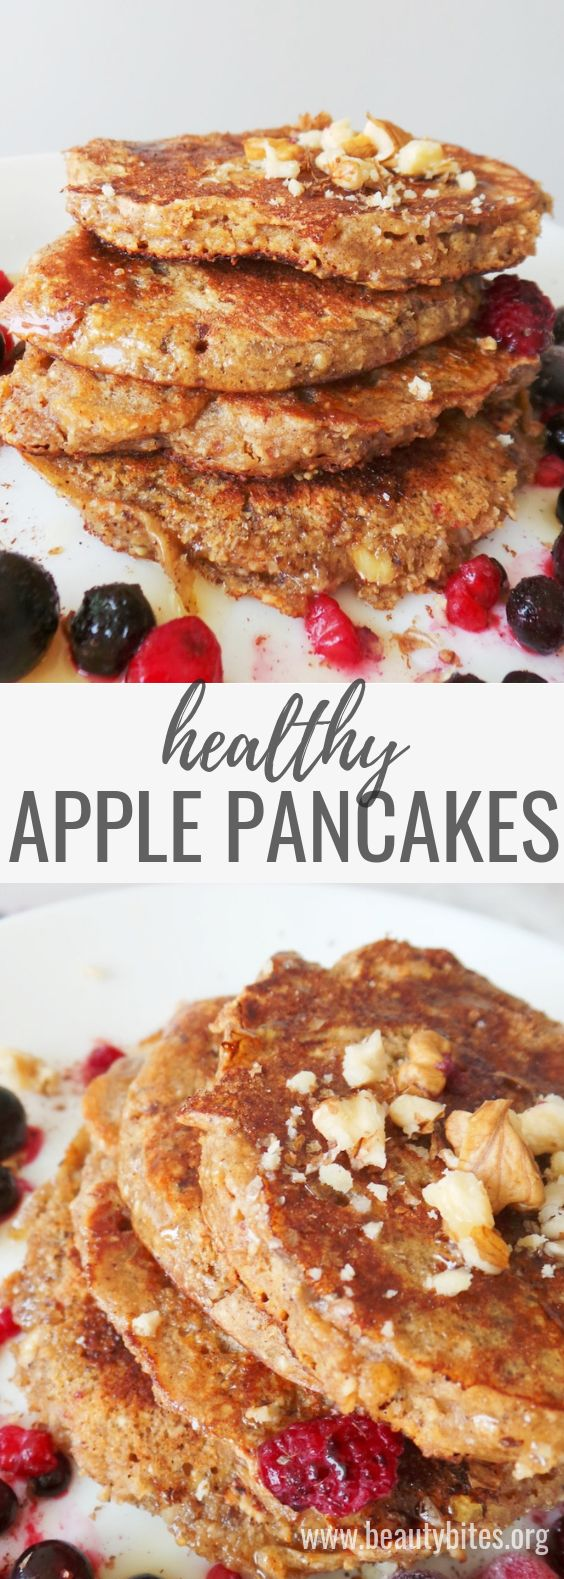 APPLE PANCAKES WITH OATS – HEALTHY & EASY BREAKFAST RECIPE